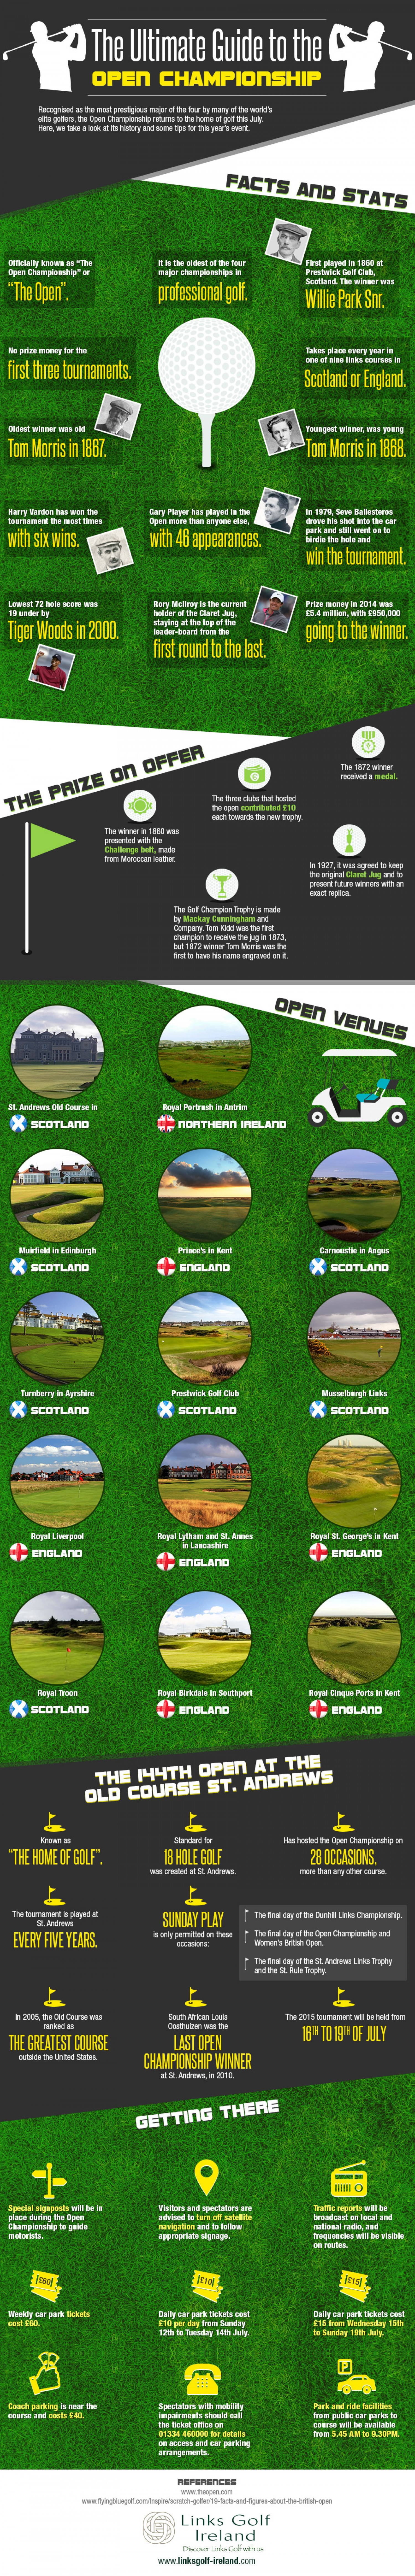 an-infographic-on-the-open-championship_559ce5fe38997_w1500